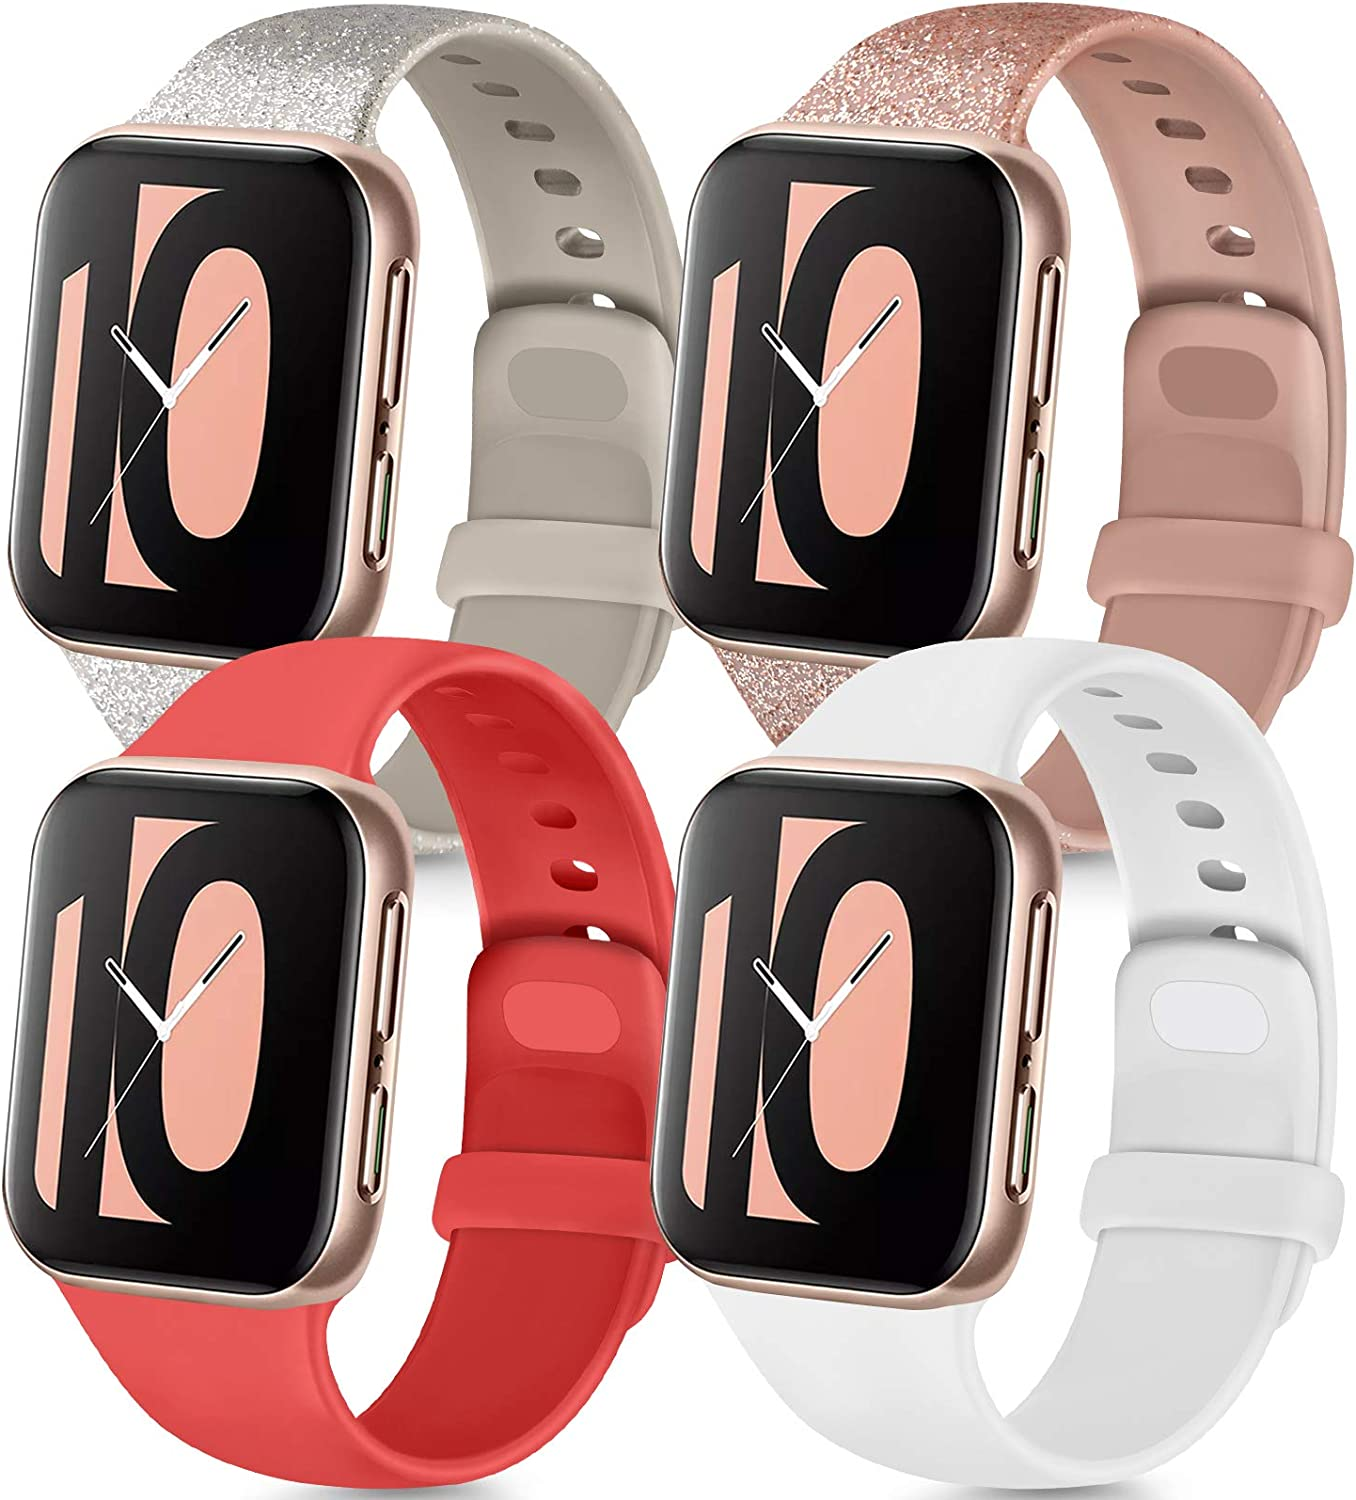 Tobfit 4 Pack Compatible for Apple Watch 38mm 42mm 40mm 44mm Bands, Soft Sport Replacement Watchband for iWatch Series 6 5 4 3 SE (Glitter Rose/Glitter Silver/Red/White, 42mm/44mm S/M)